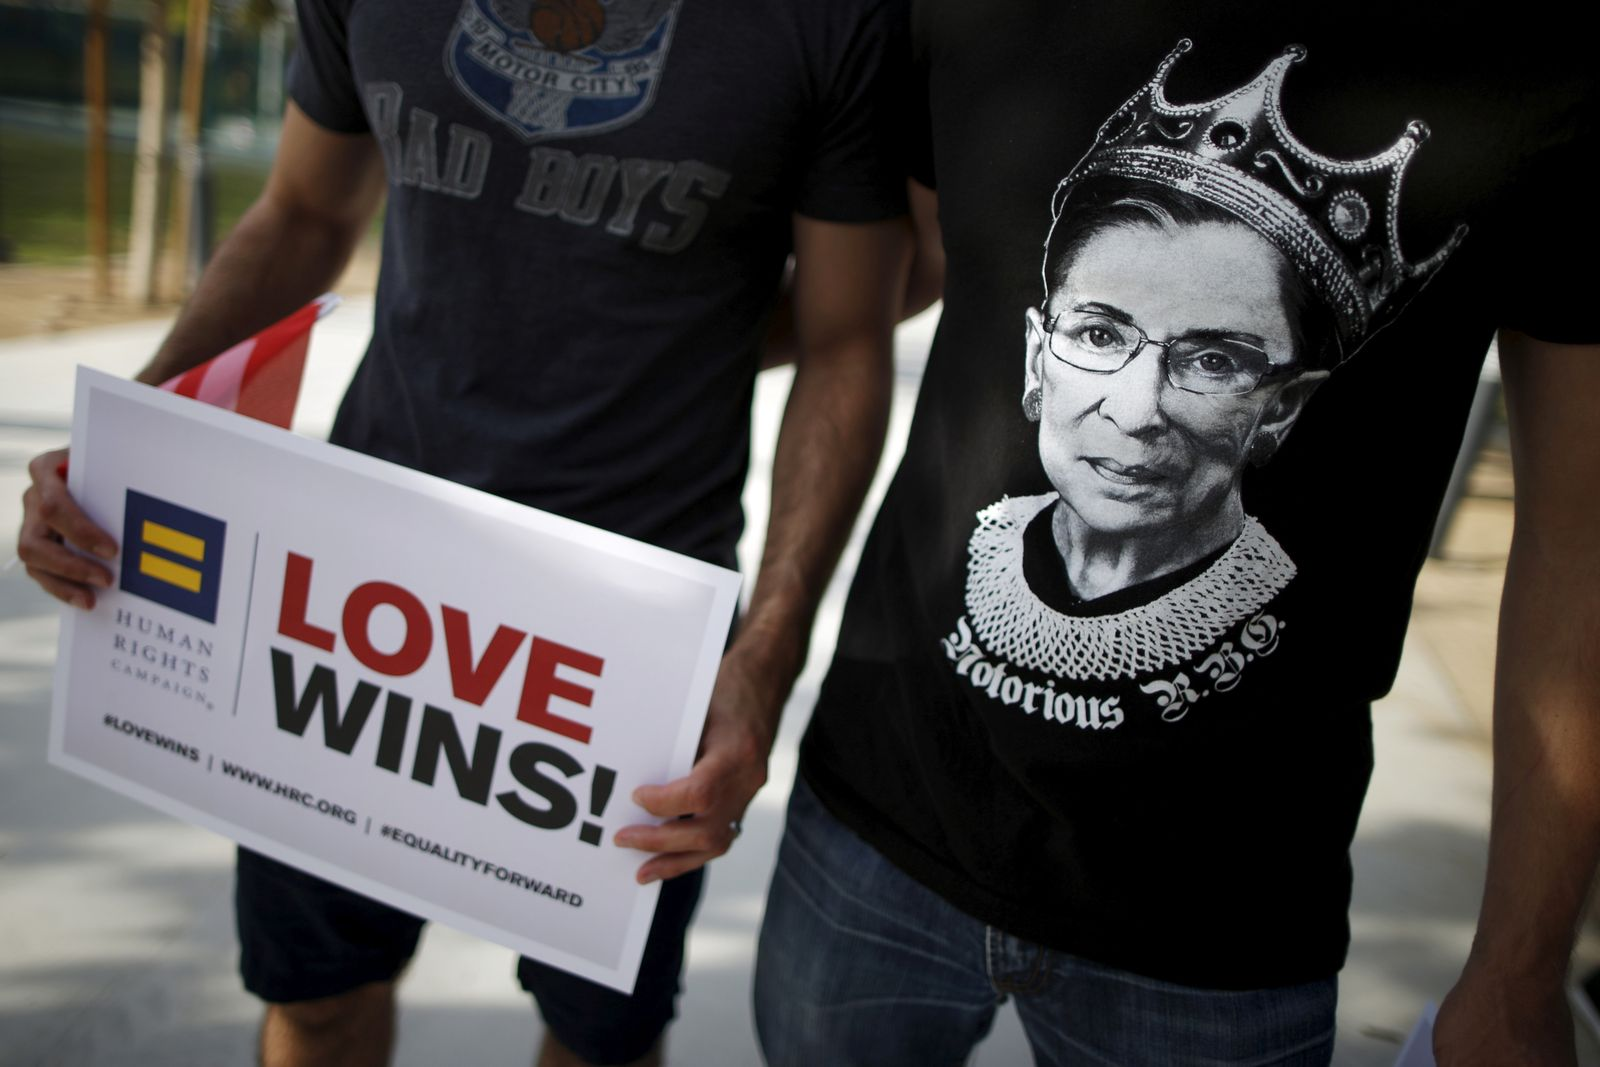 """FILE PHOTO: A man wears a t-shirt showing U.S. Supreme Court Justice Ruth Bader Ginsburg as """"Notorious R.B.G."""" at a celebration rally in West Hollywood"""